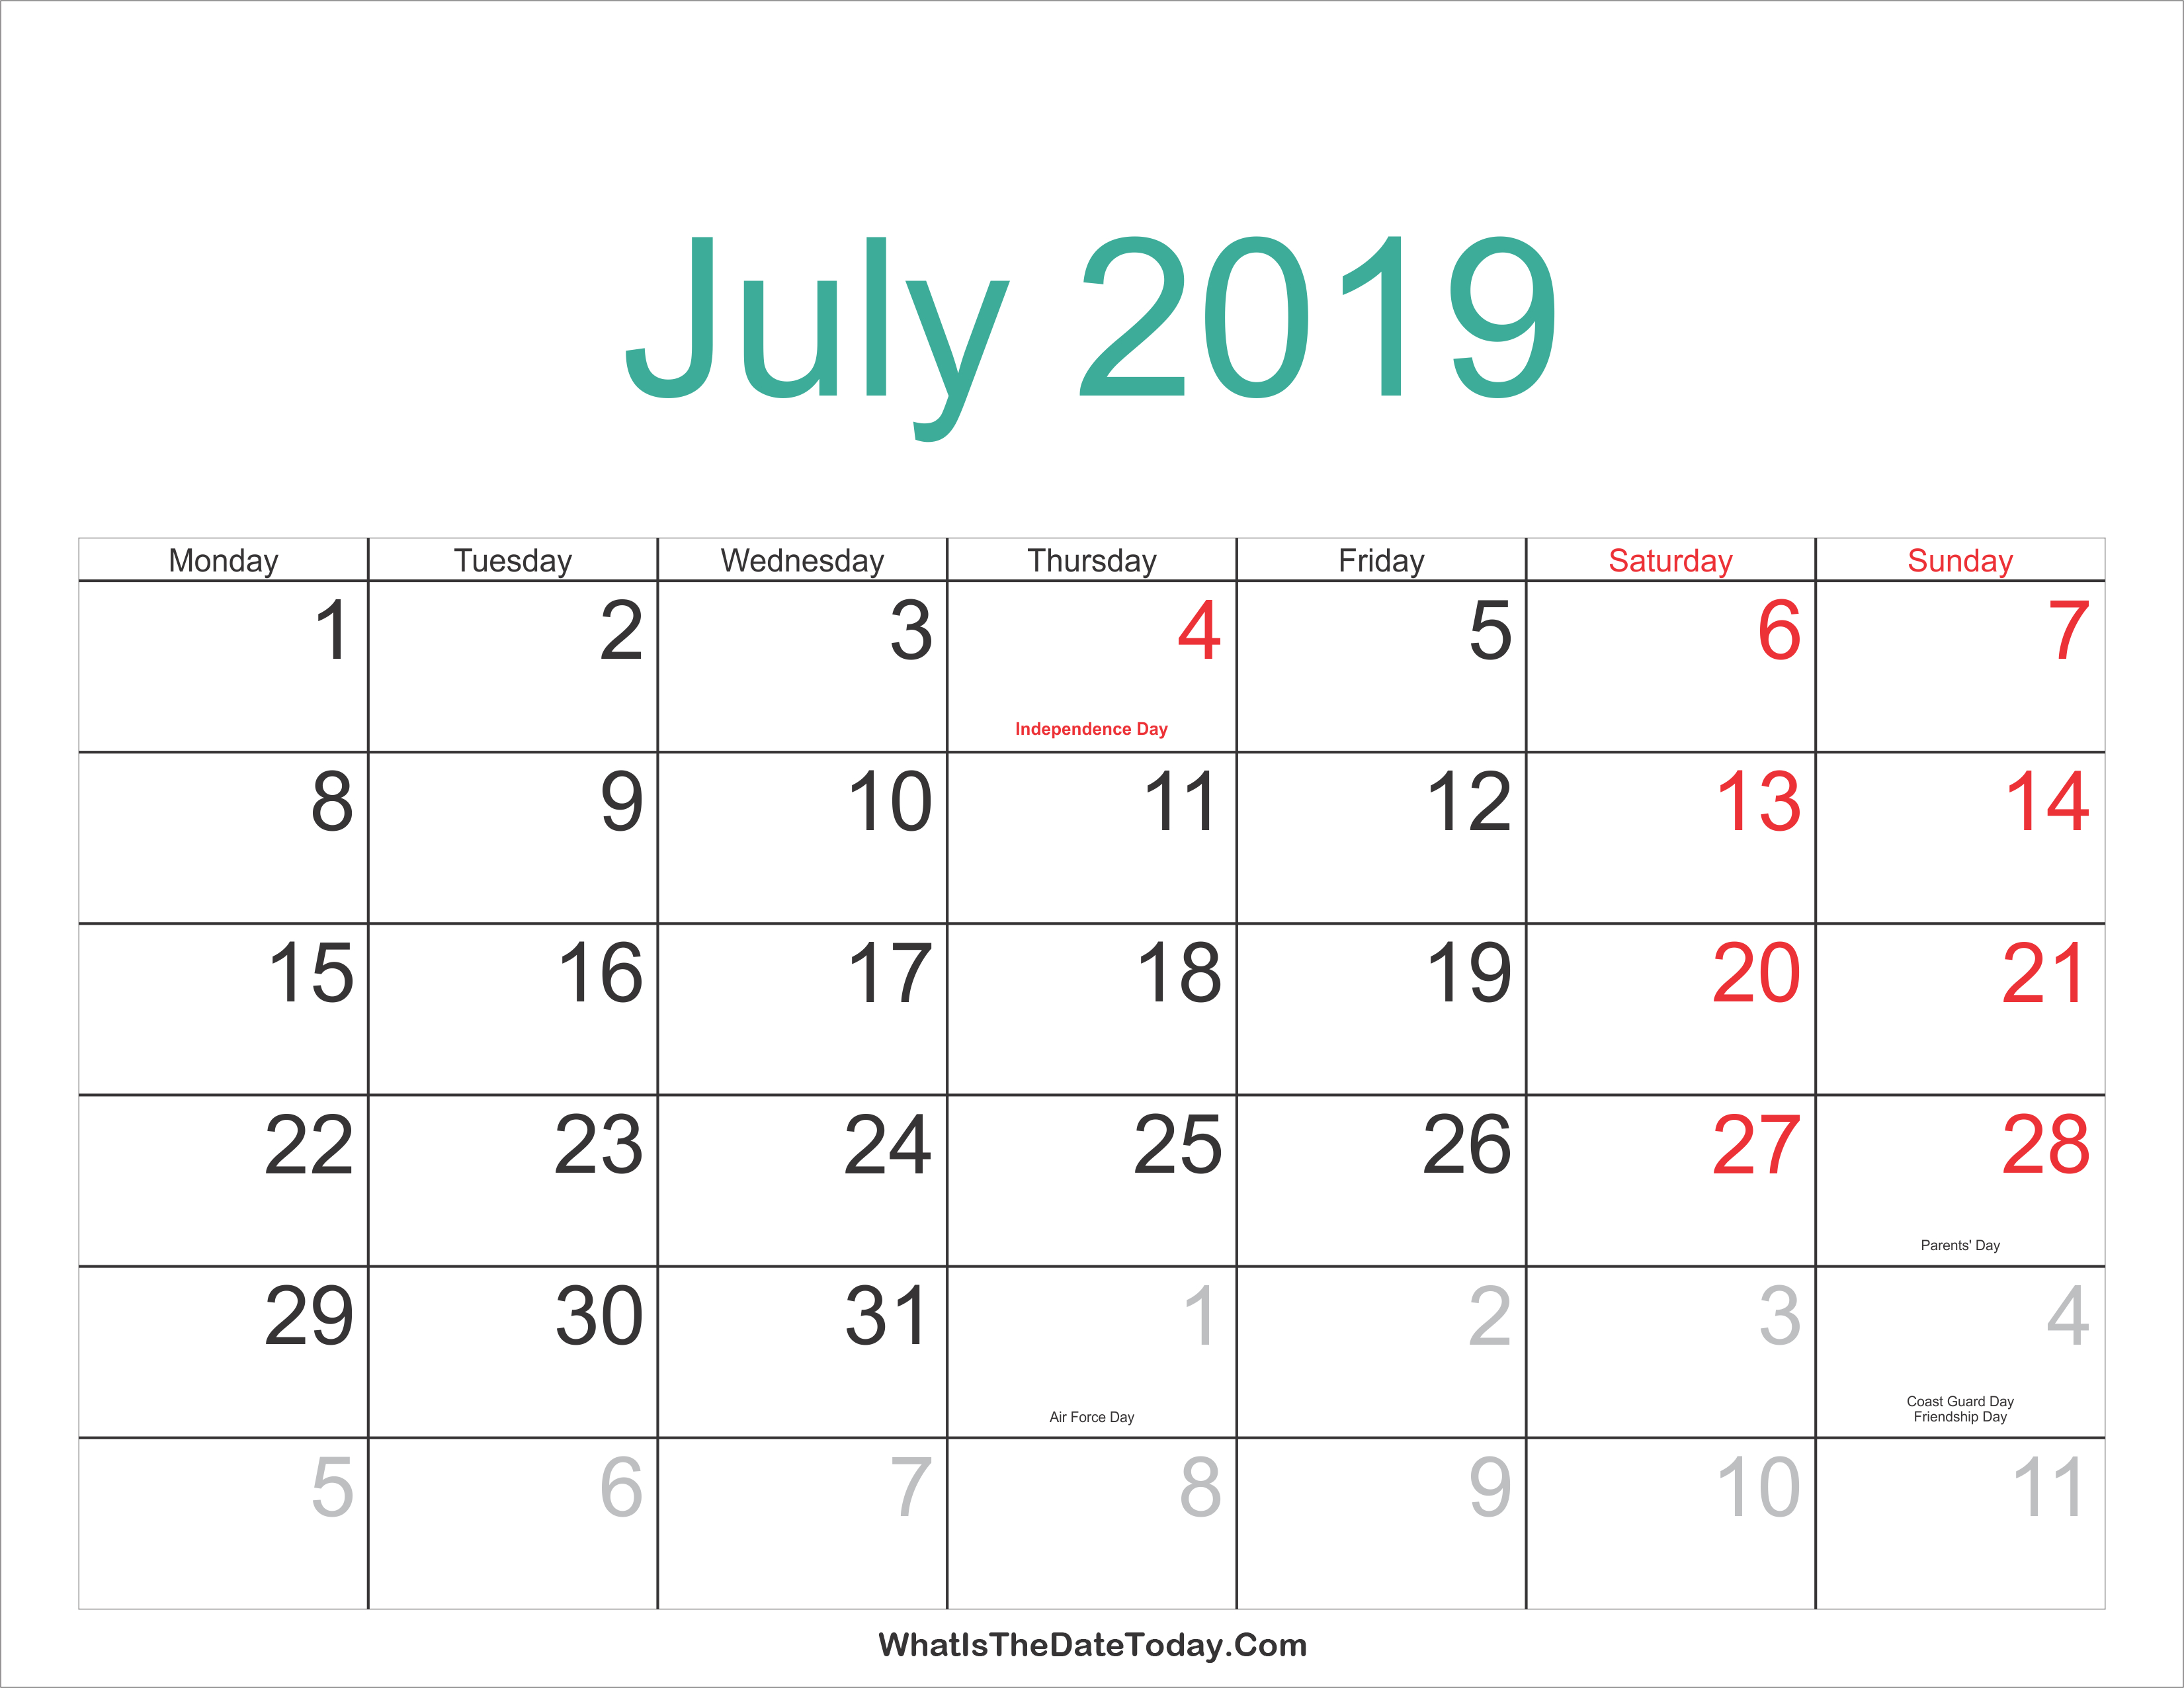 July 2019 Calendar With Holidays Printable, July 2019